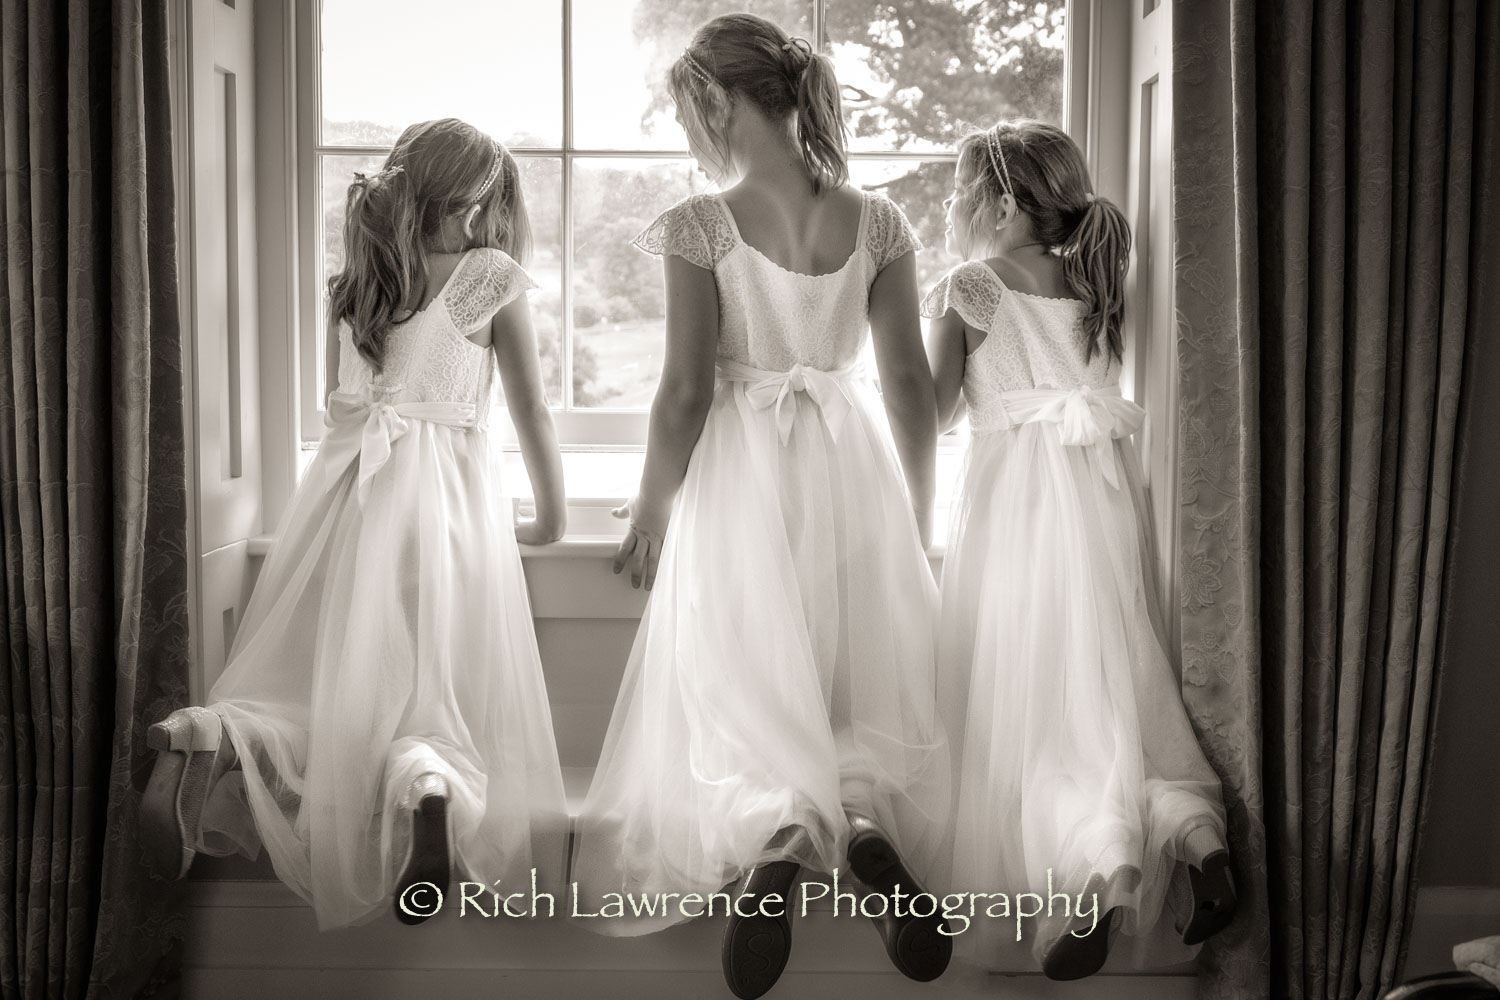 Three bridesmaids looking out of a window